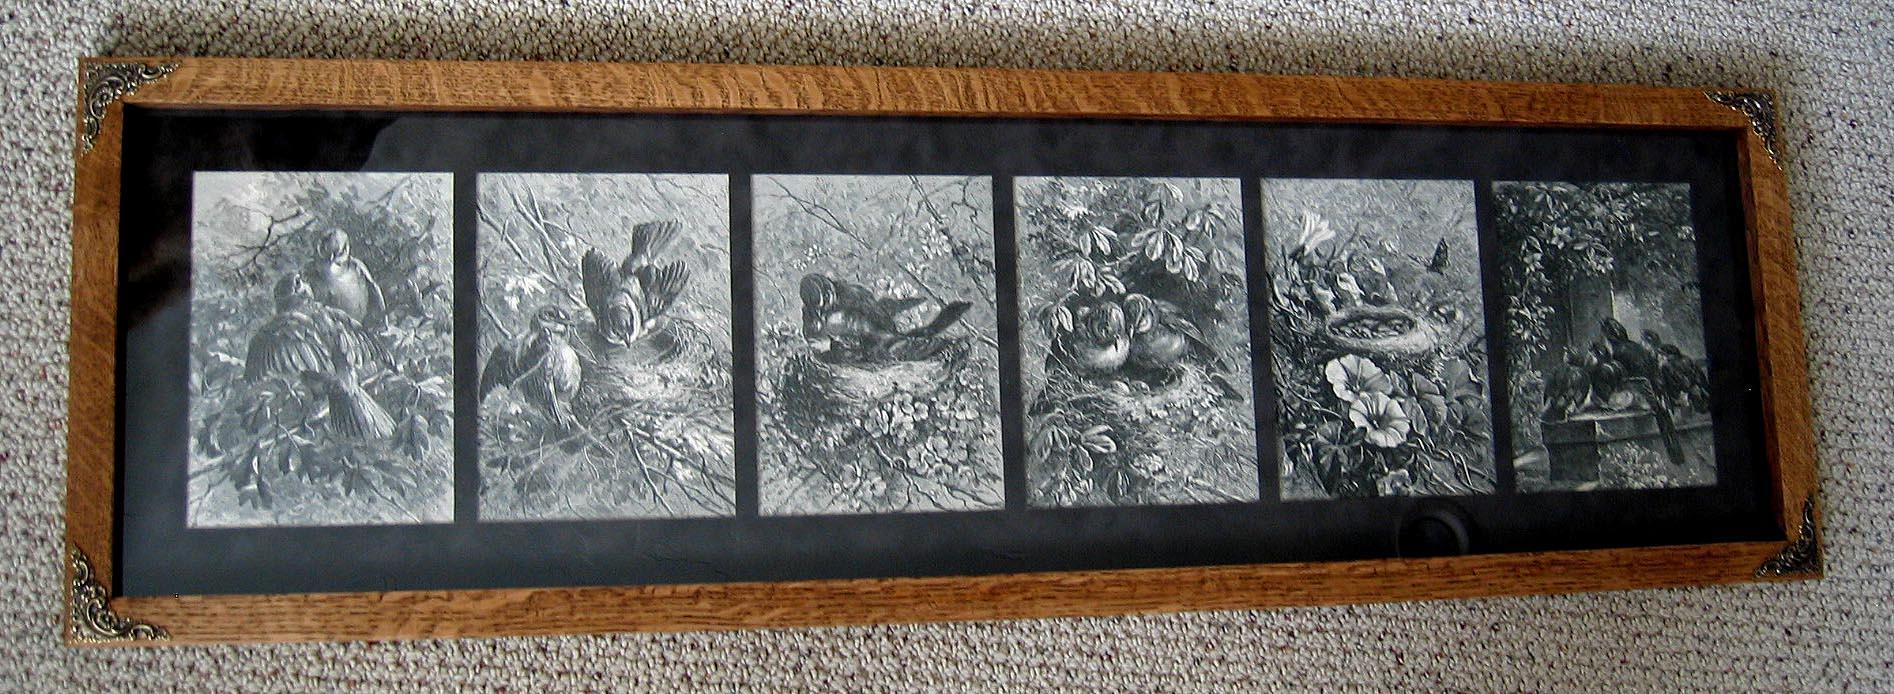 c1880 Bird Yard Long Print s Giacomelli Engraving Nest Eggs Chicks Antique